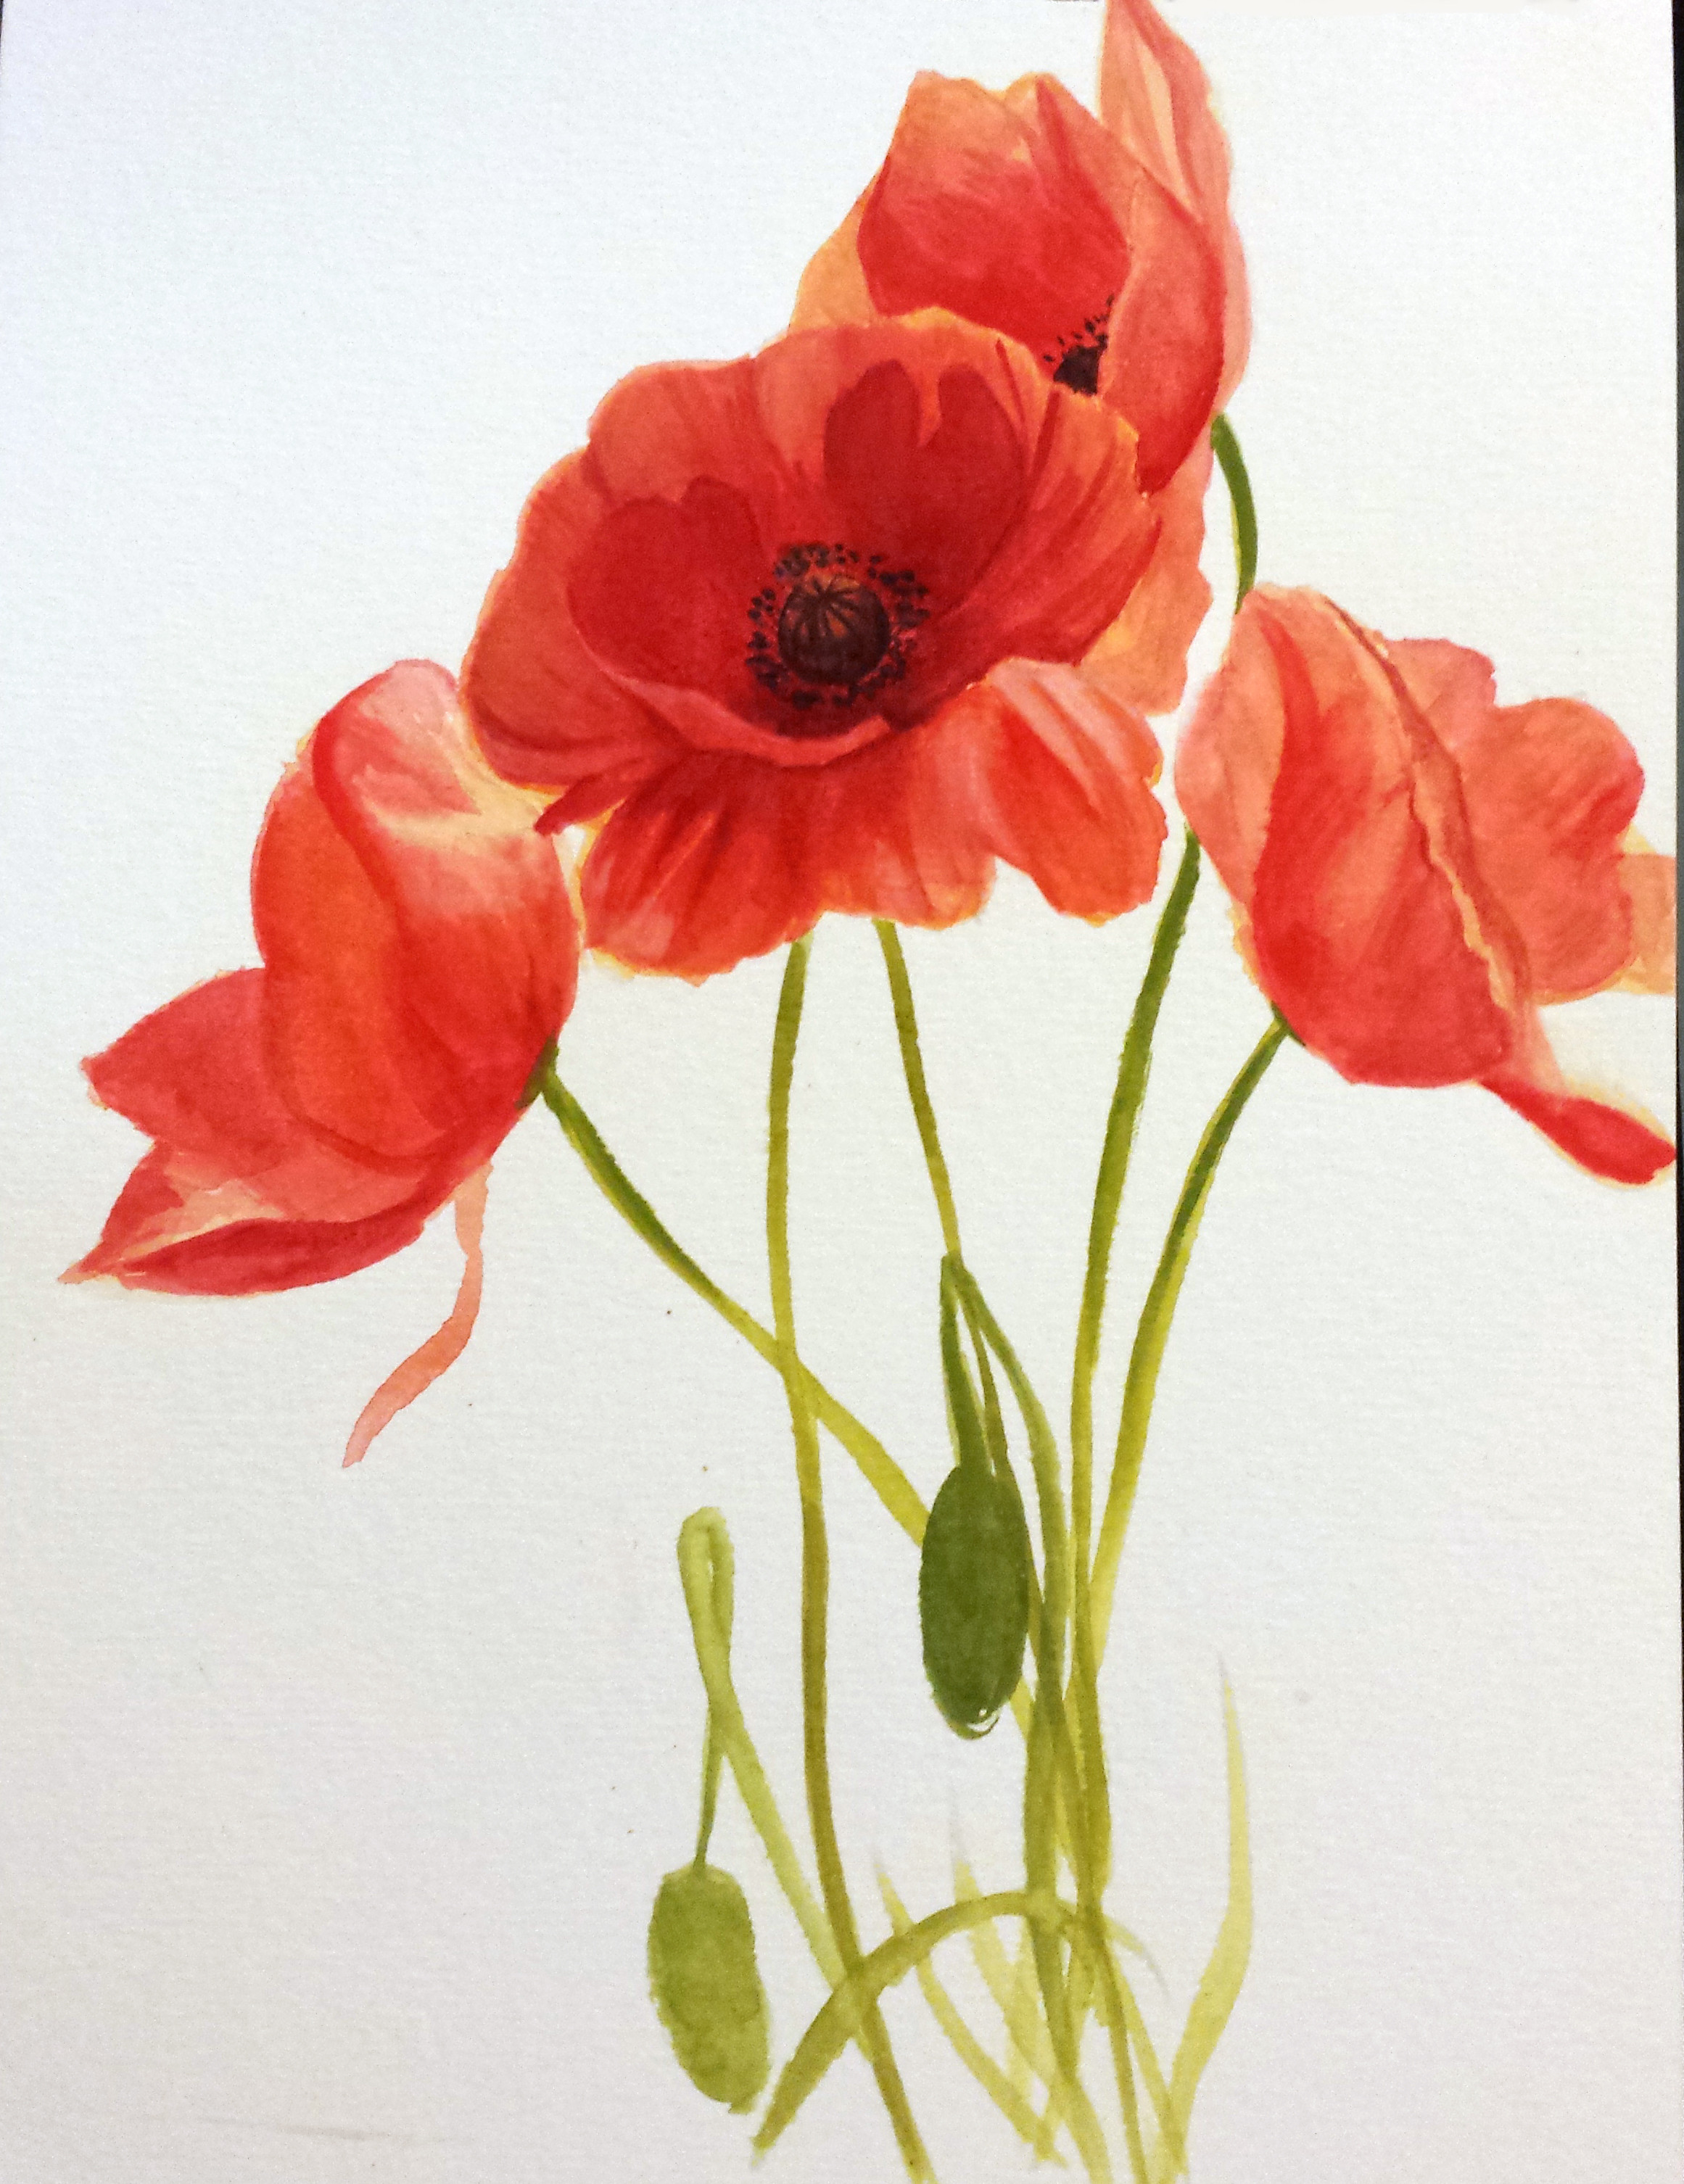 Poppies drawing at getdrawings free for personal use poppies 2322x3012 complete drawing of poppy flower april 21st week day 1 the mightylinksfo Image collections